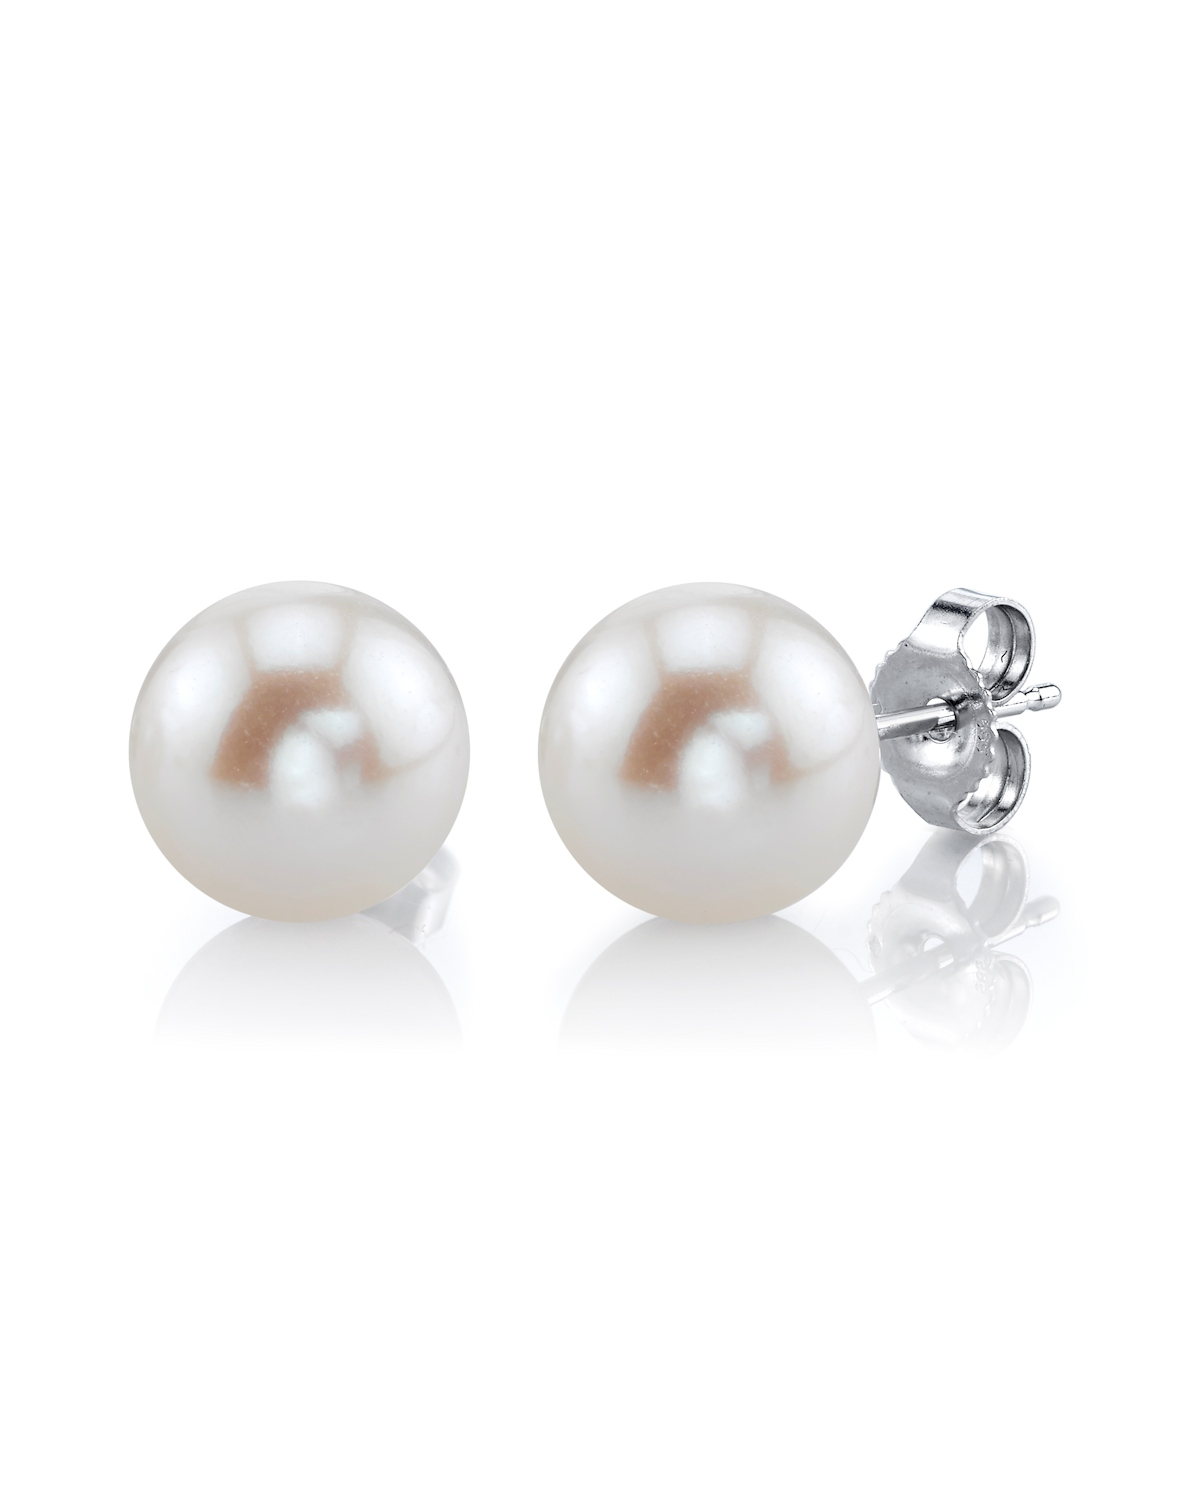 e9cea0197 8mm White Freshwater Pearl Stud Earrings